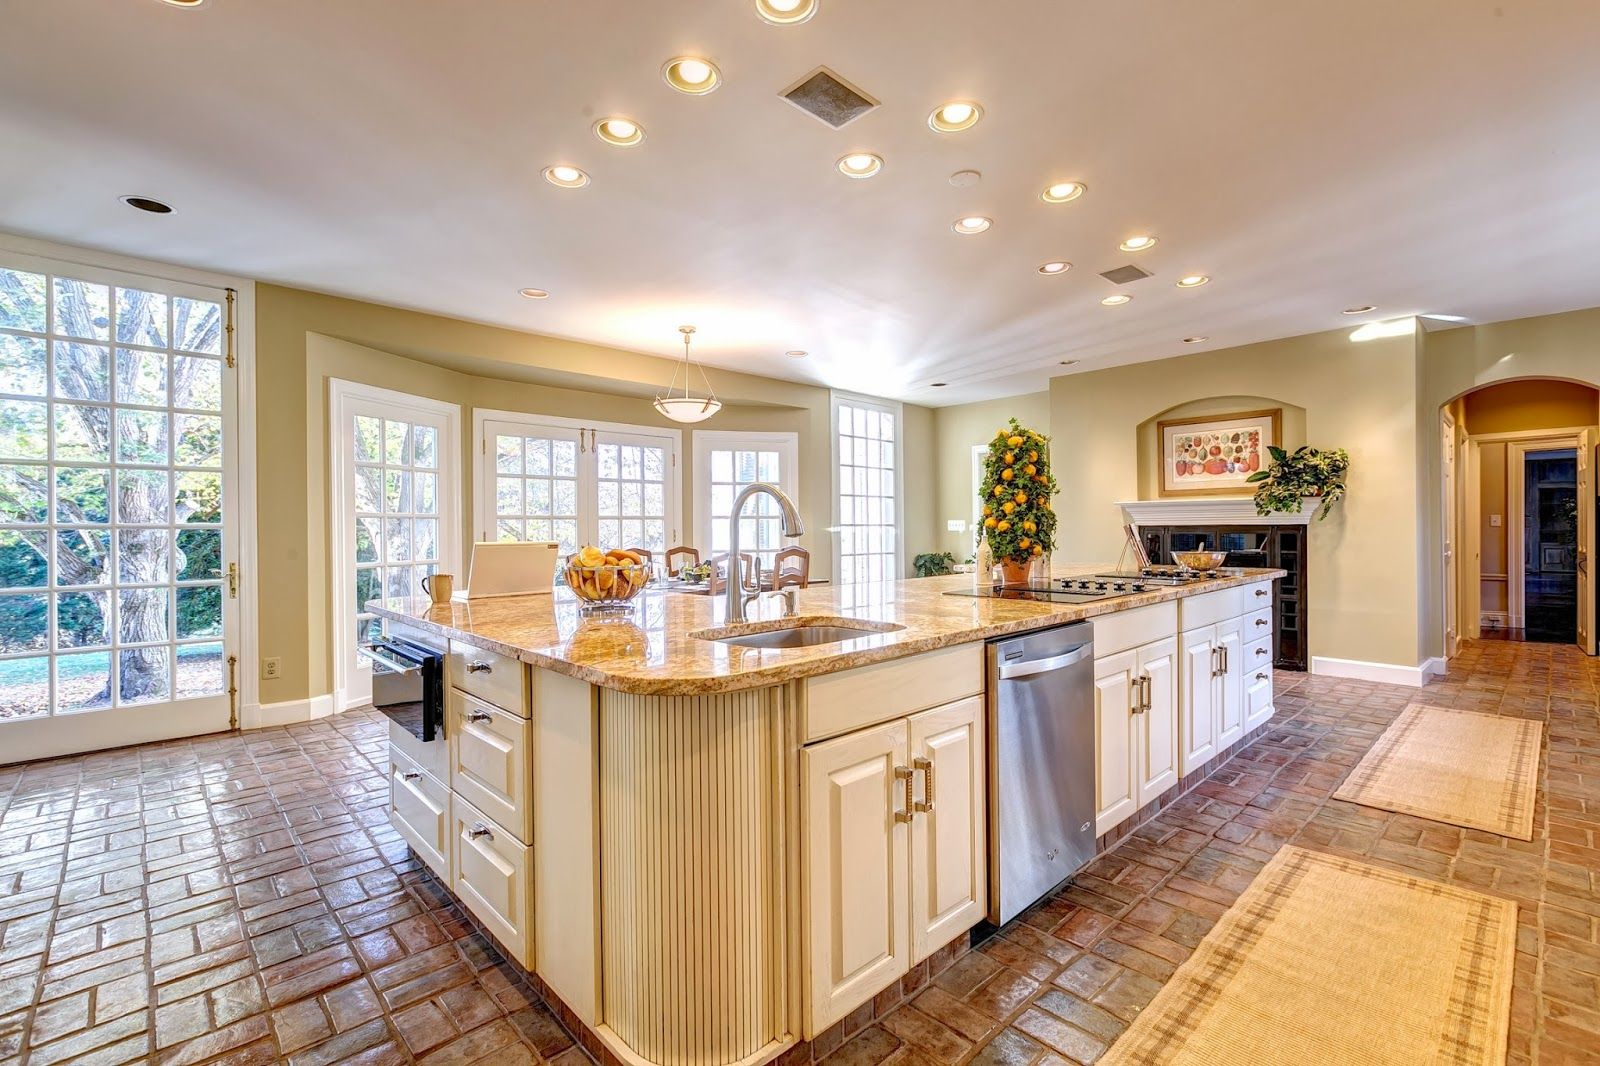 Beige Design Ideas Island Kitchen Decorating With Granite Counter Top Marble  Table Great For Kitchen Classic